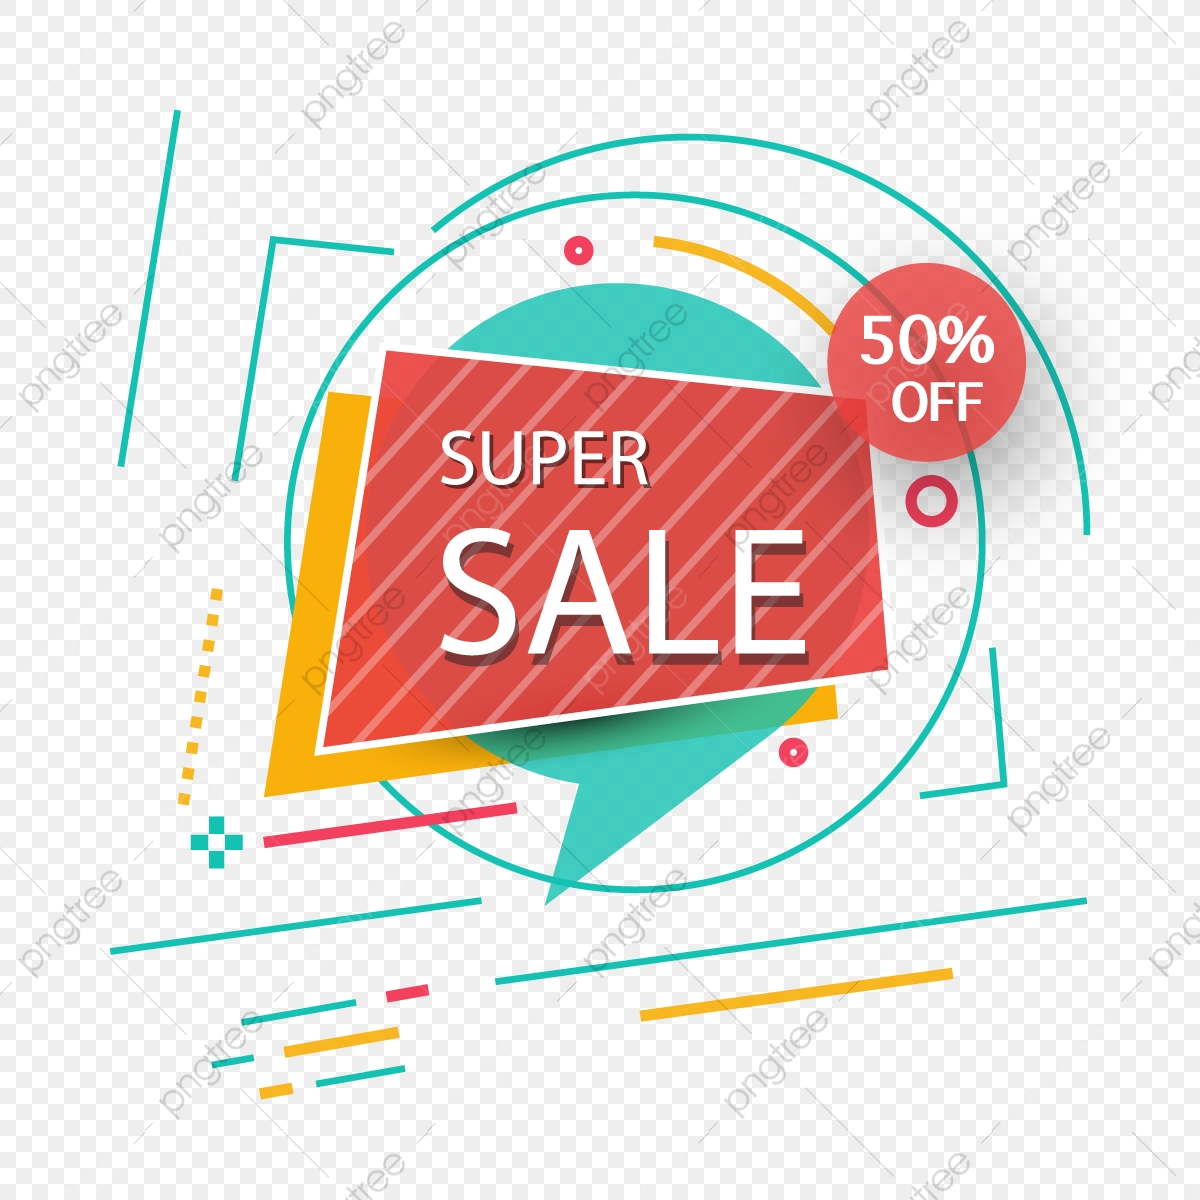 Super Sales Icon Elements, Sales, Discounts, Super PNG and